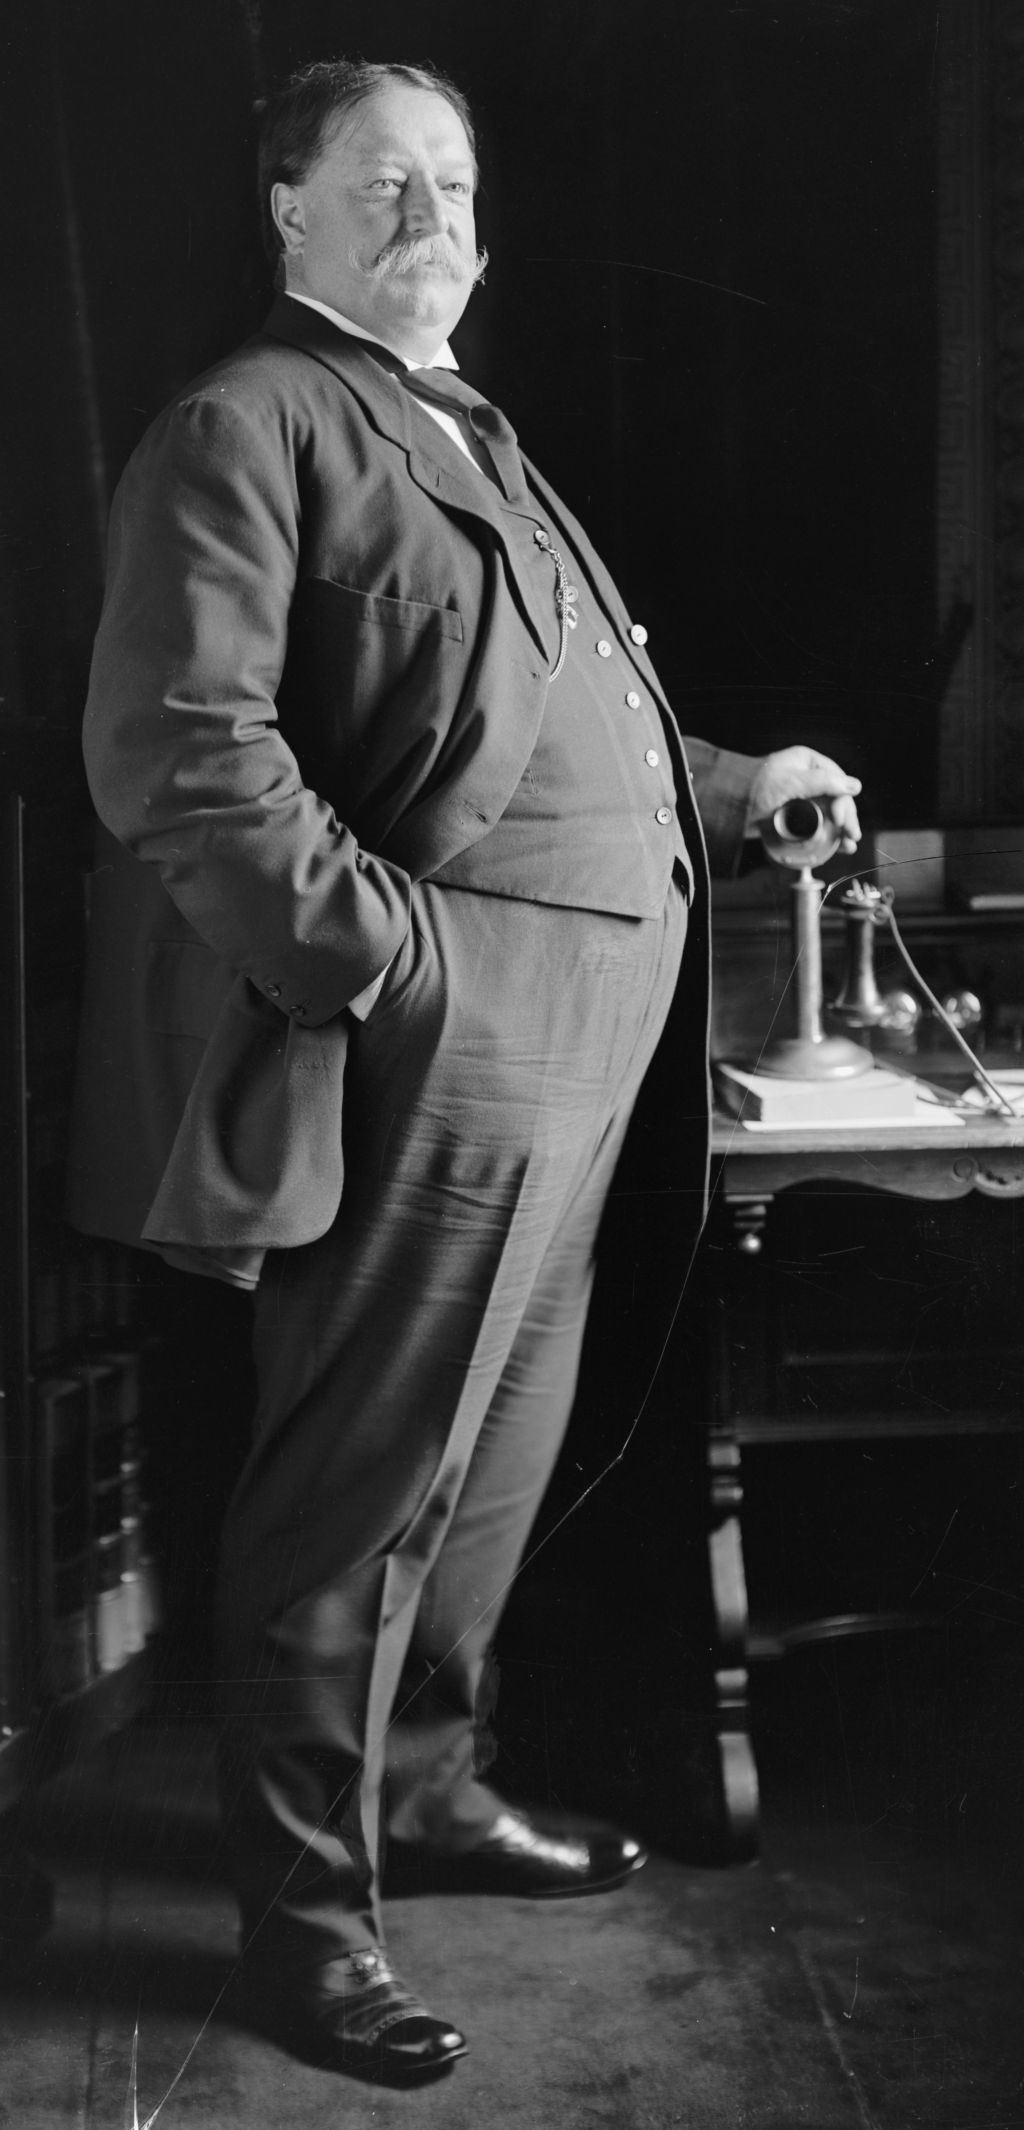 William Howard Taft in the White House